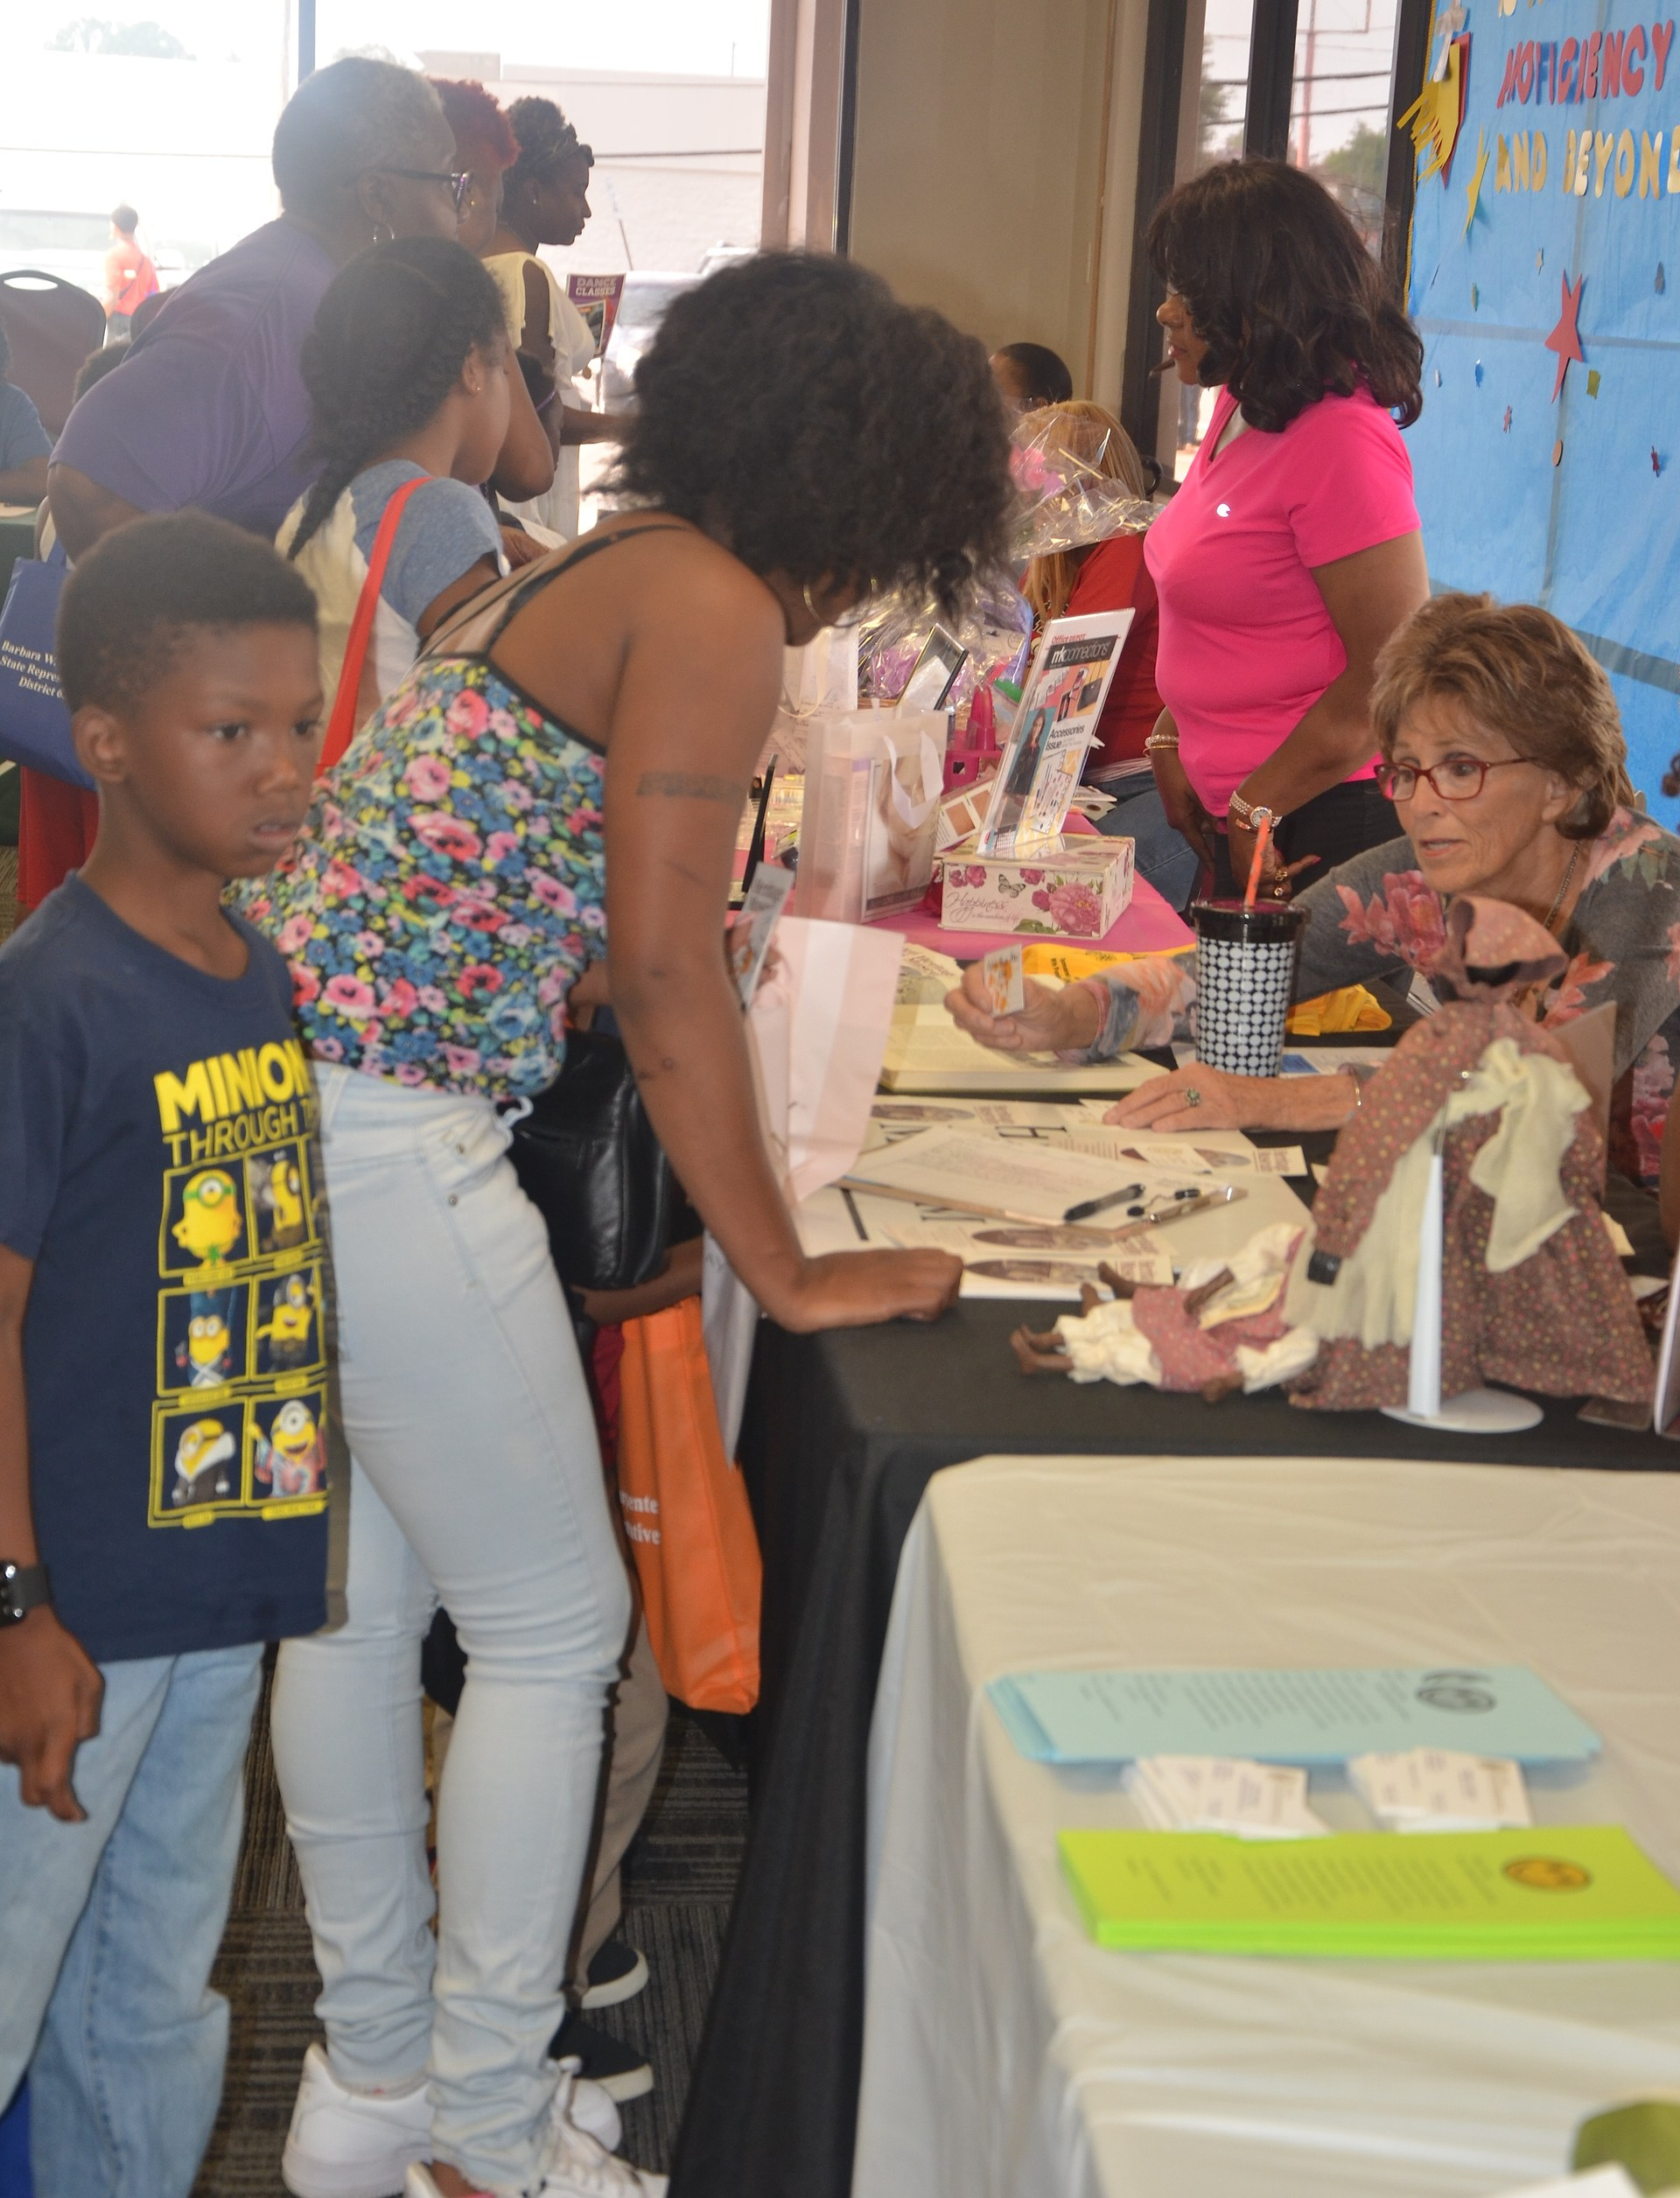 A young boy and adult lady checking out of the stations at the 2017 Back To School Expo